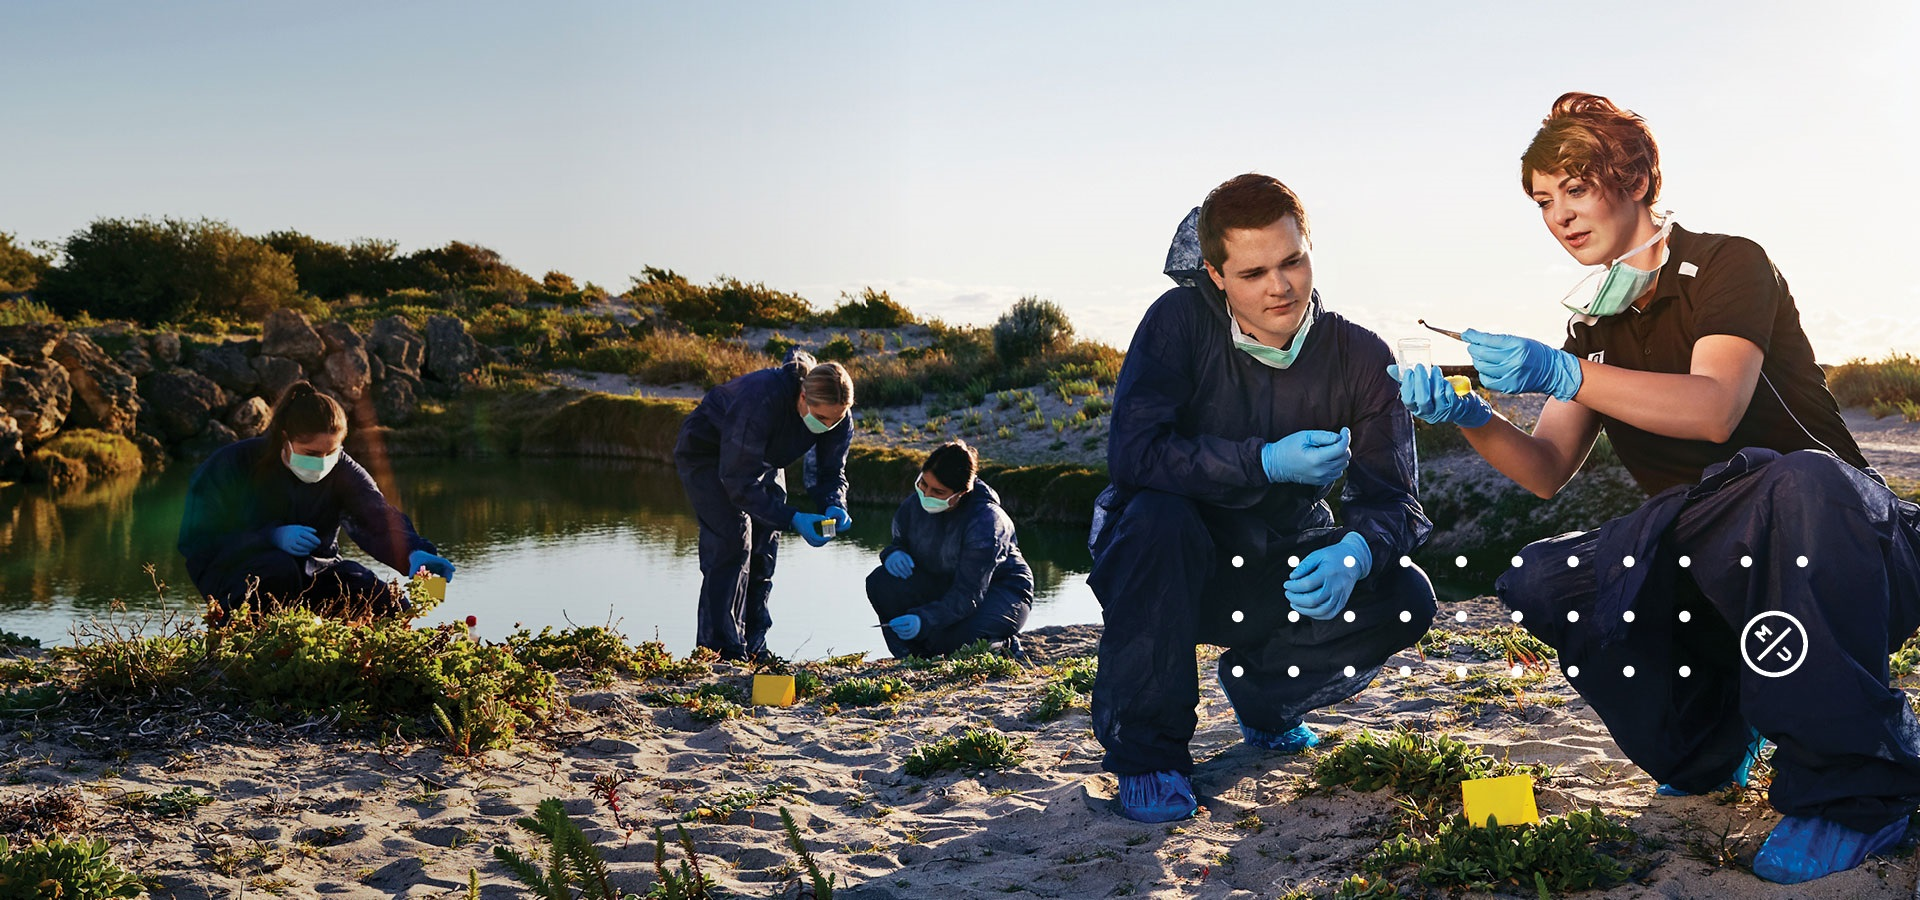 Paola Magni and students inspecting a fake crime scene at the wetlands